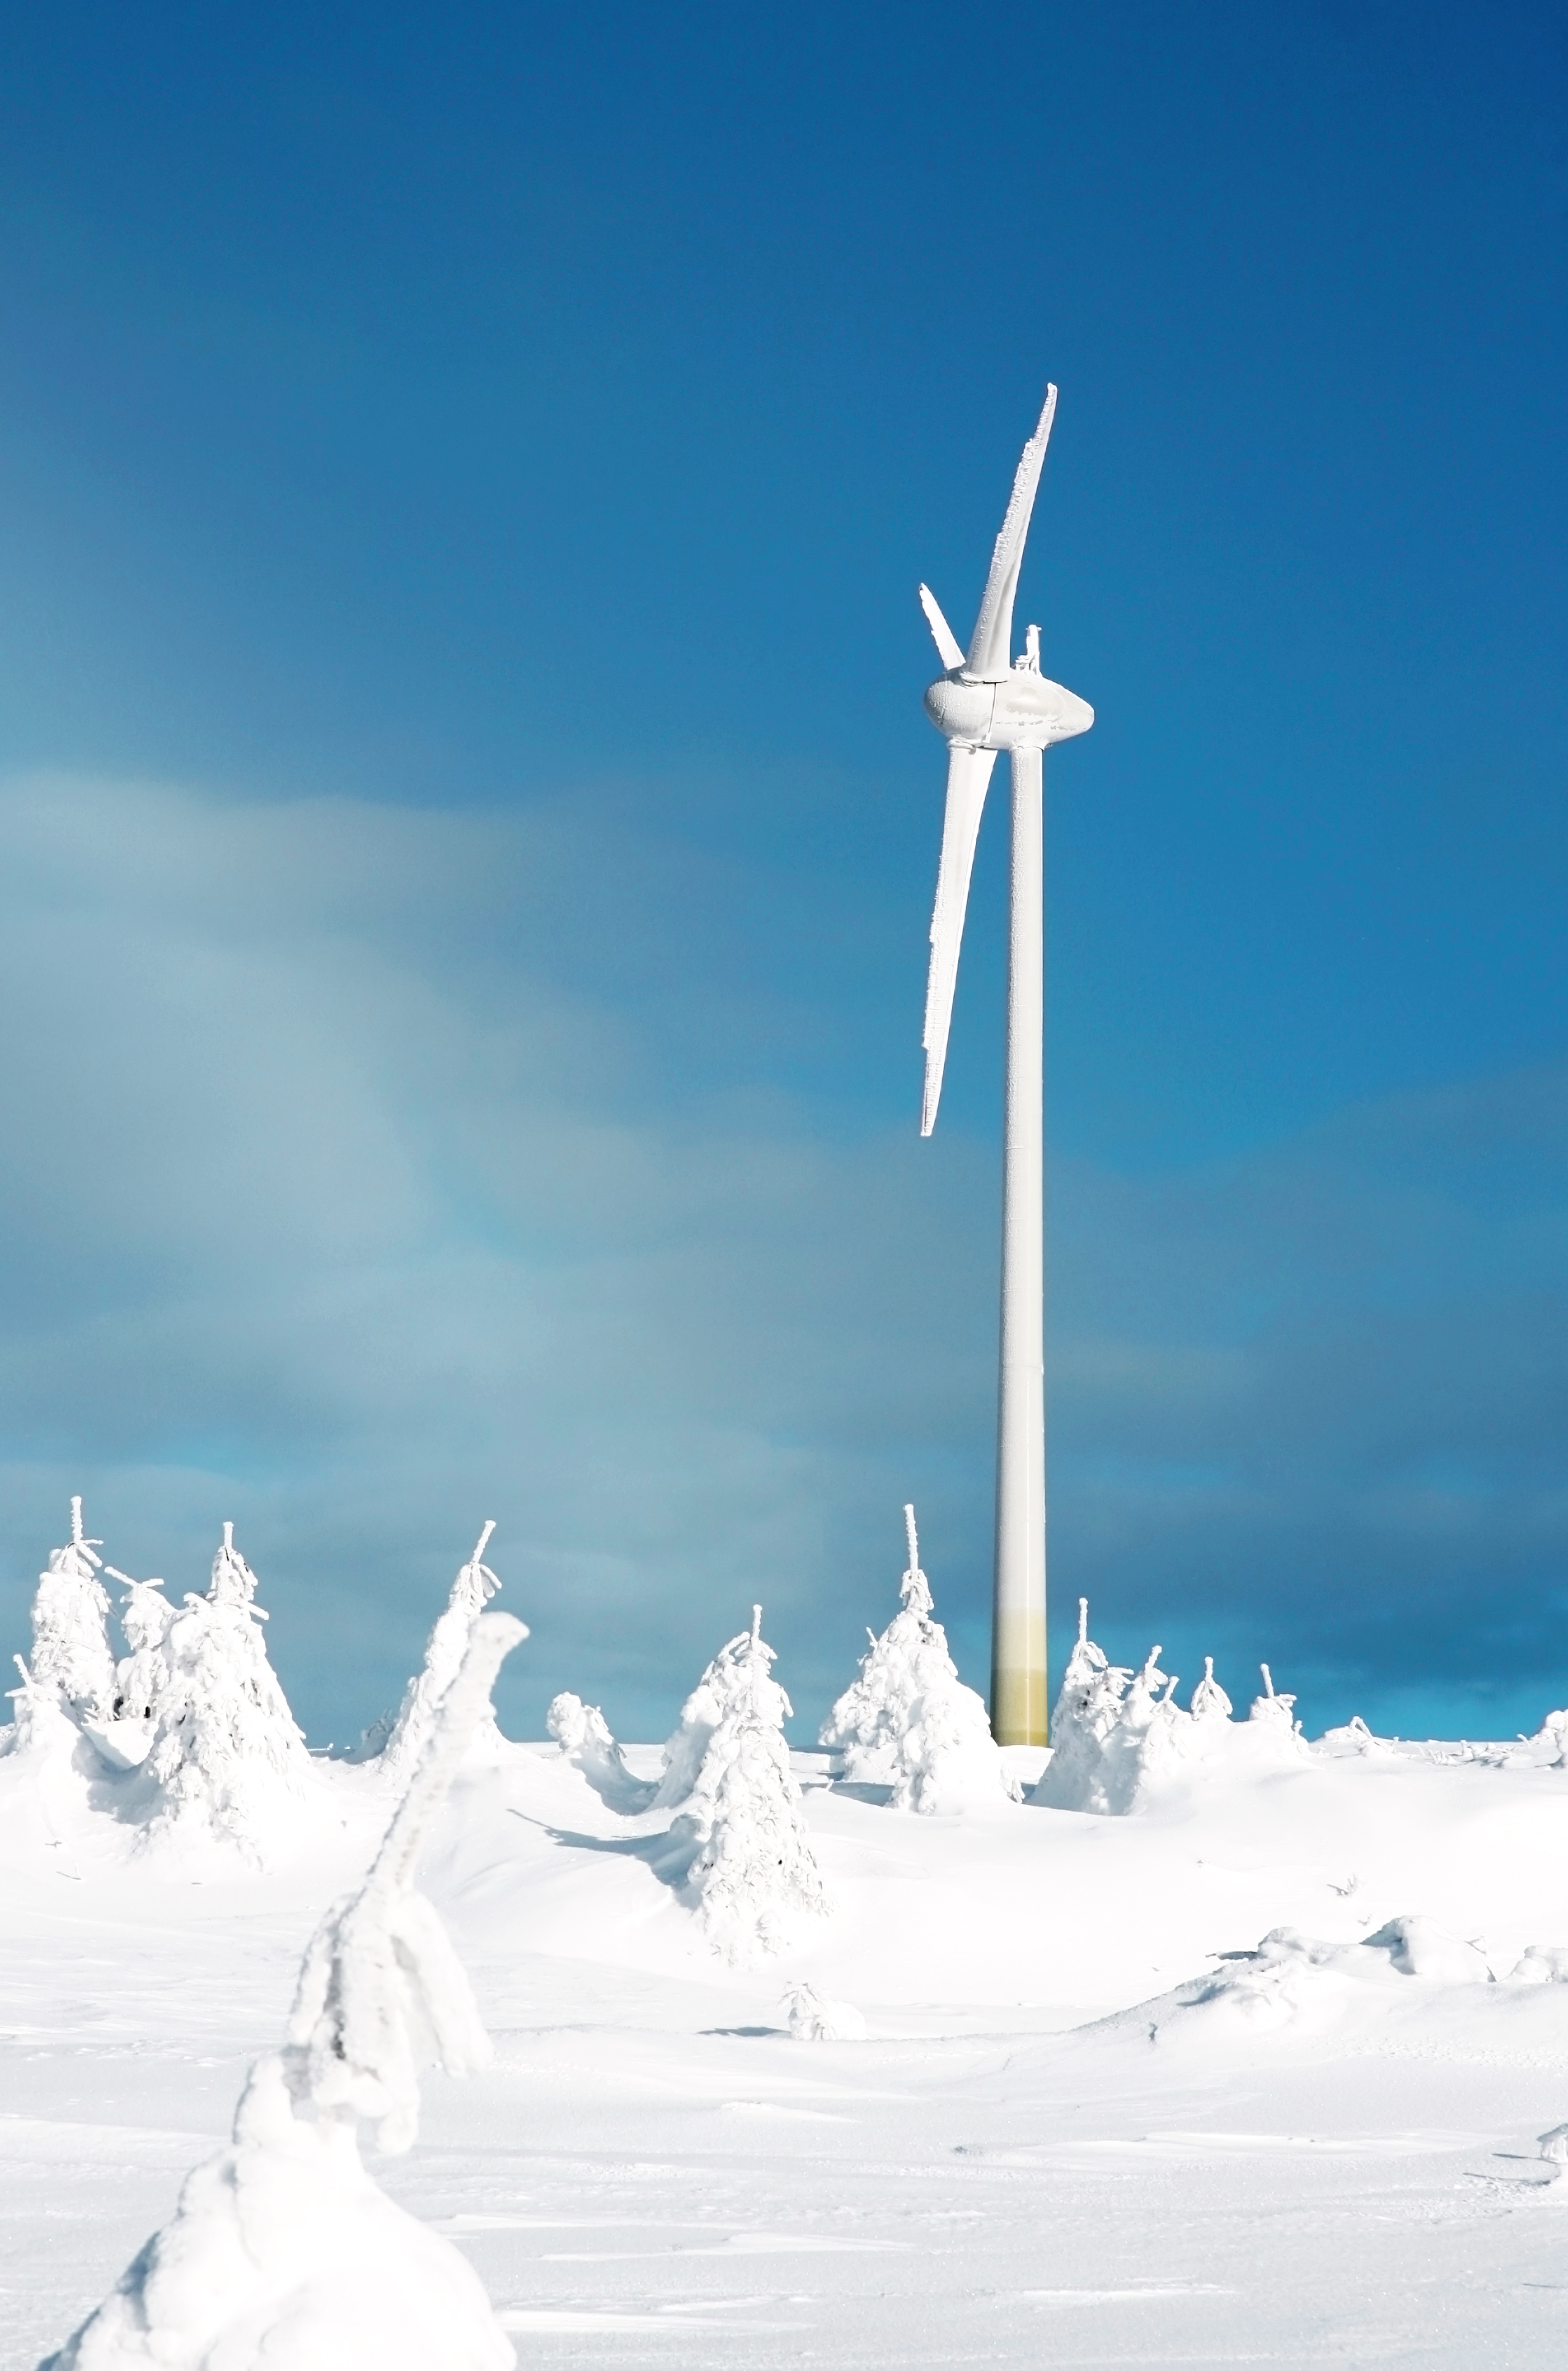 A lone turbine in a snow covered landscape.